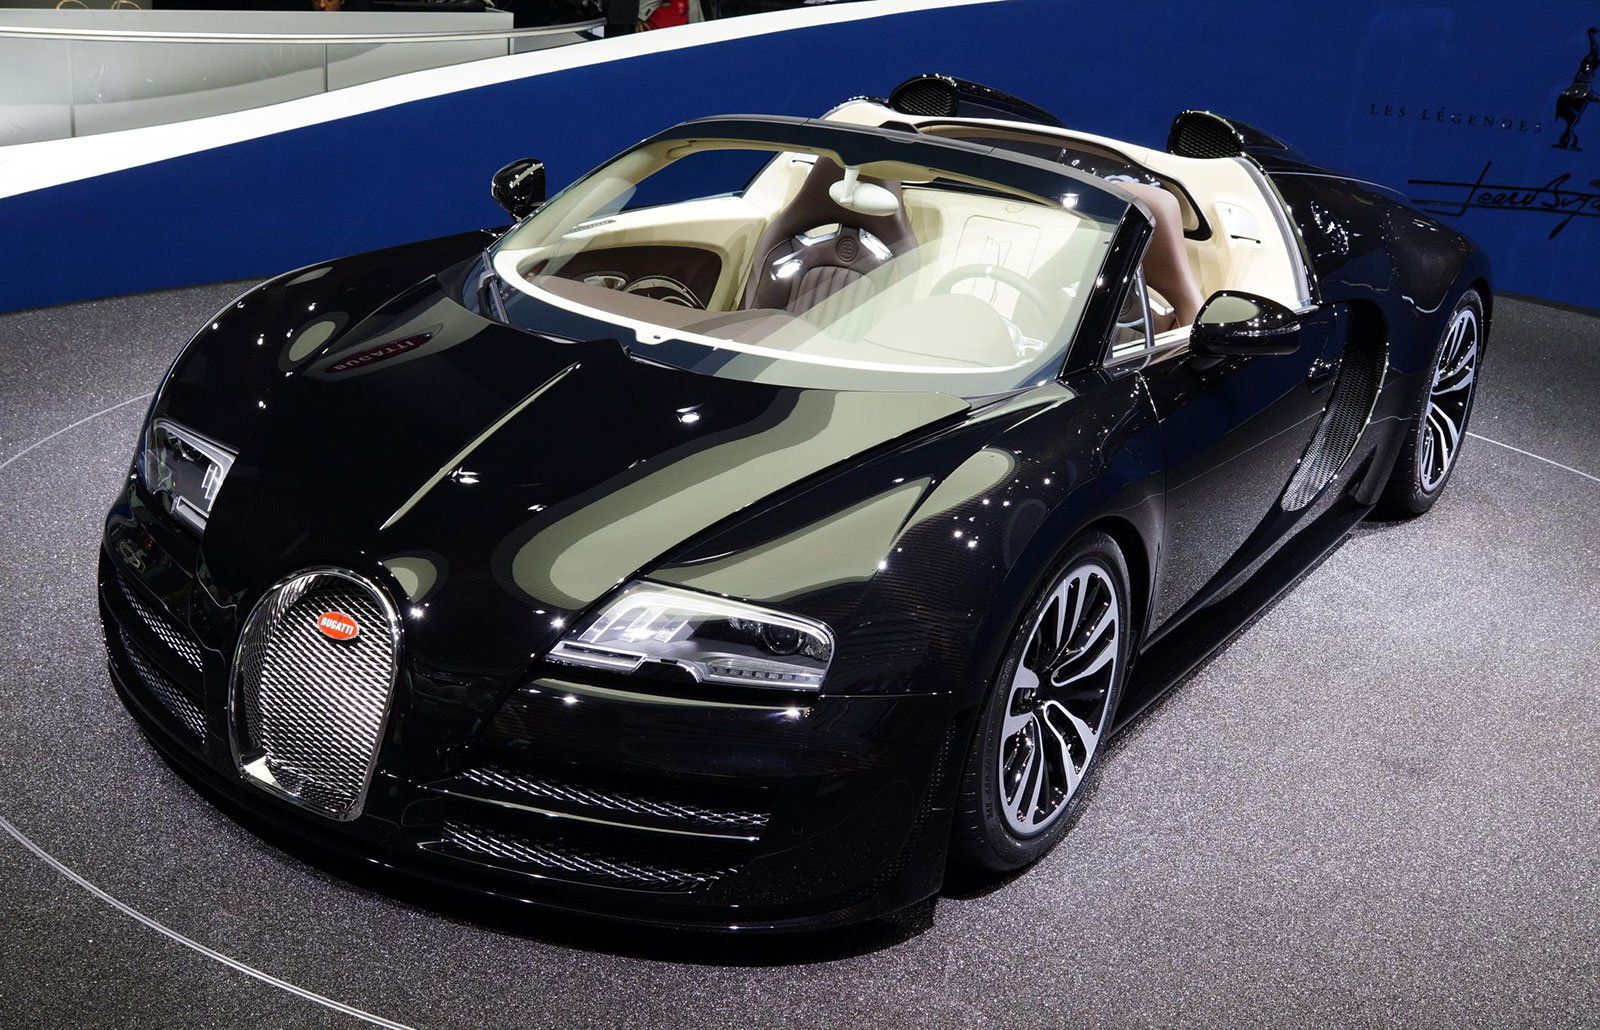 bugatti veyron jean bugatti only 3 units rm9 9 mil image 198547. Black Bedroom Furniture Sets. Home Design Ideas